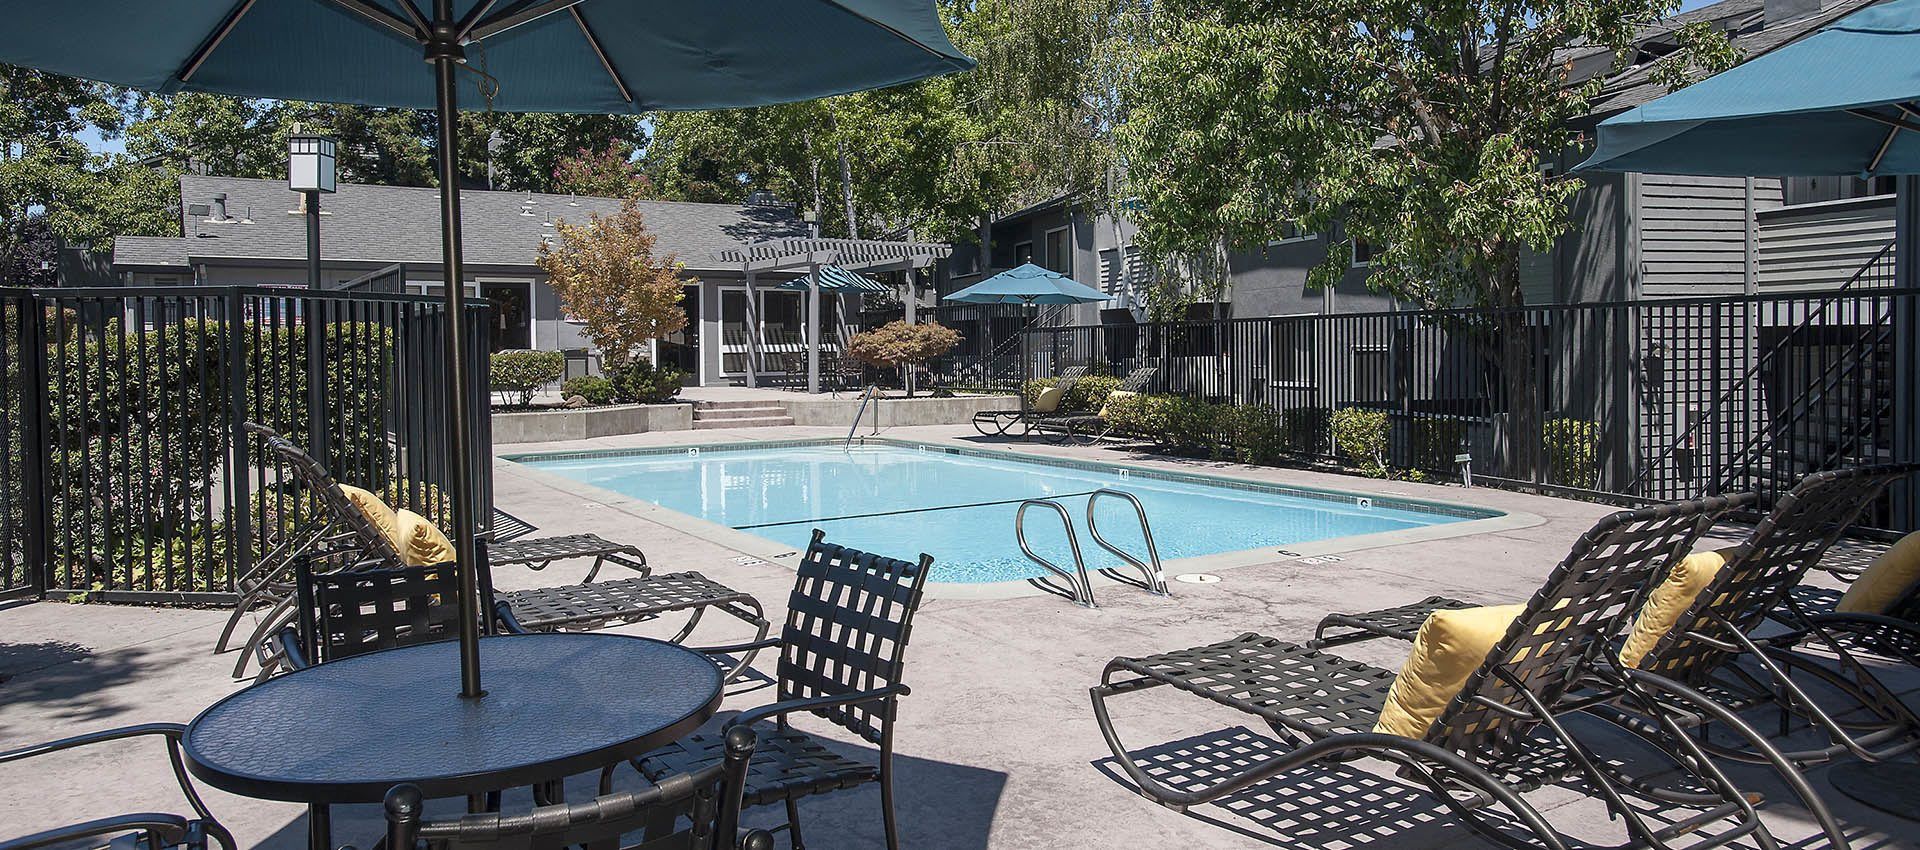 Picnic Table With Umbrella Near Pool at Plum Tree Apartment Homes in Martinez, California